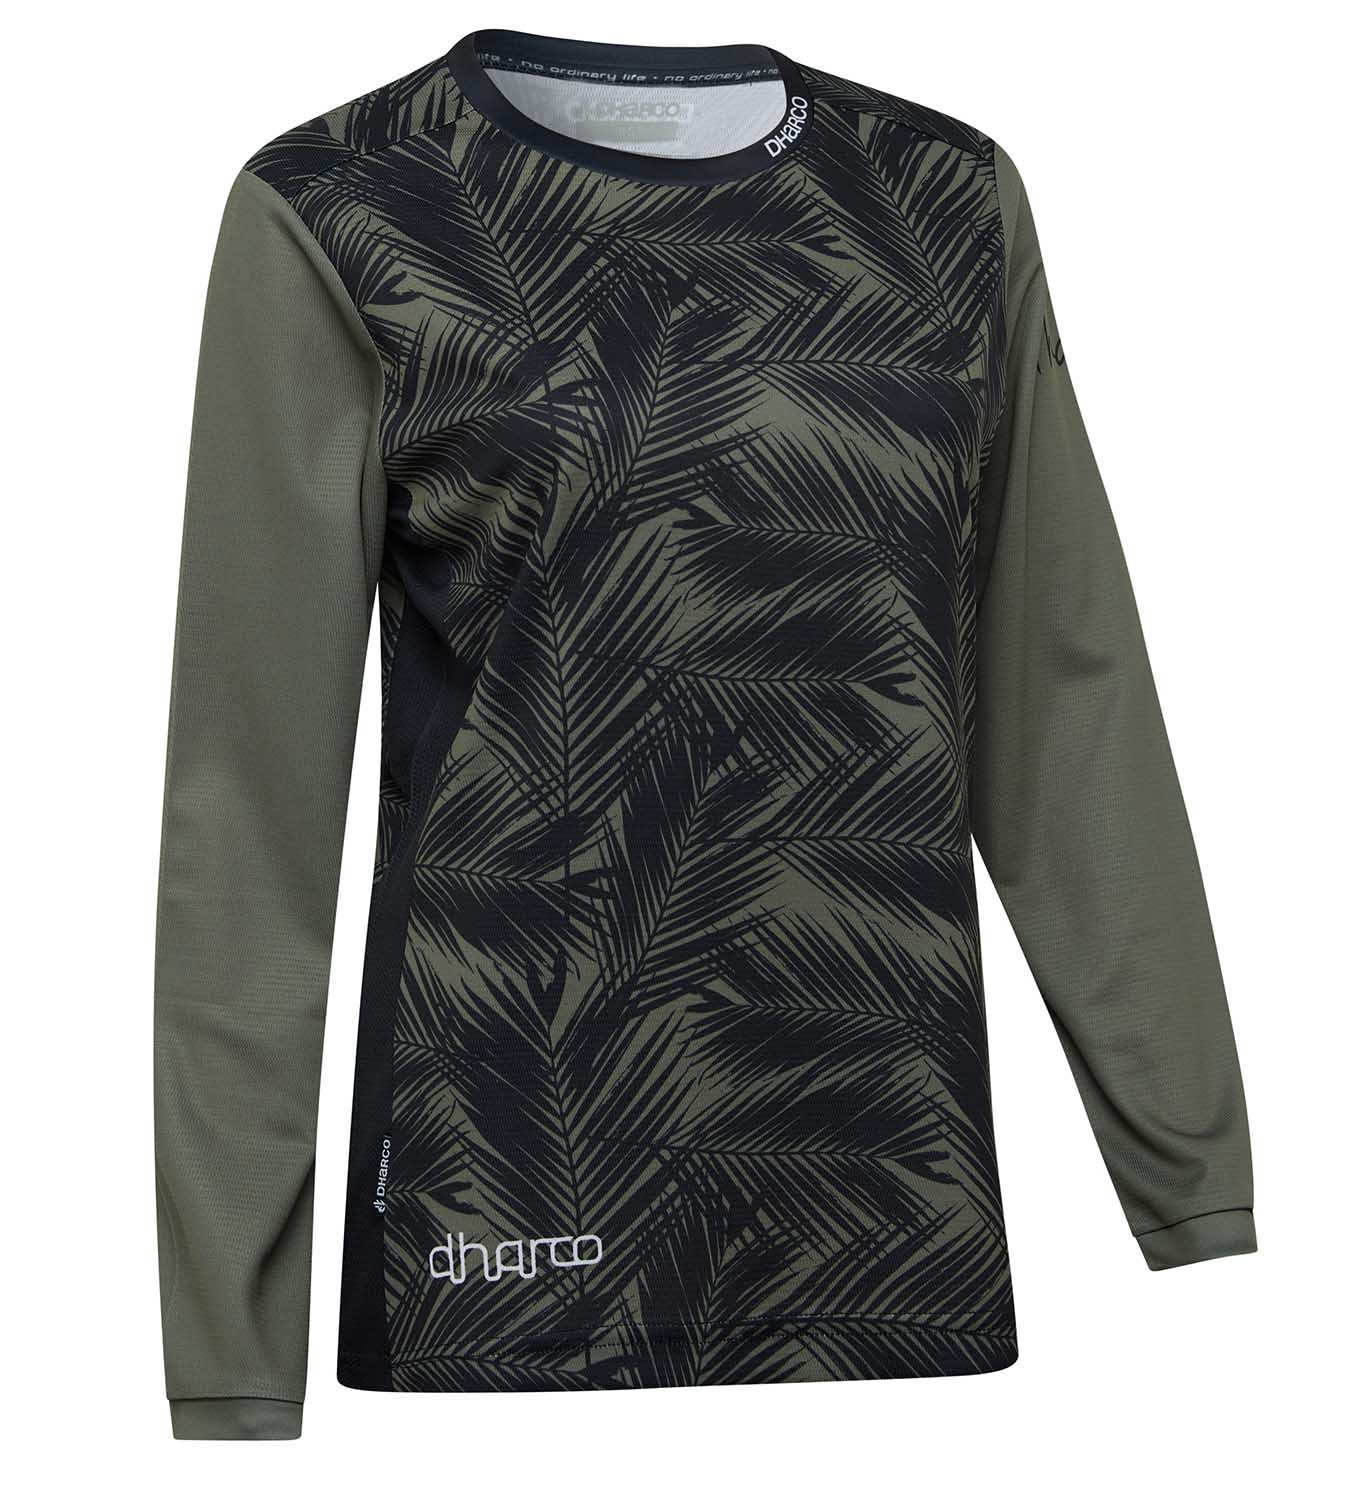 DHaRCO DHaRCO Women's Gravity Jersey